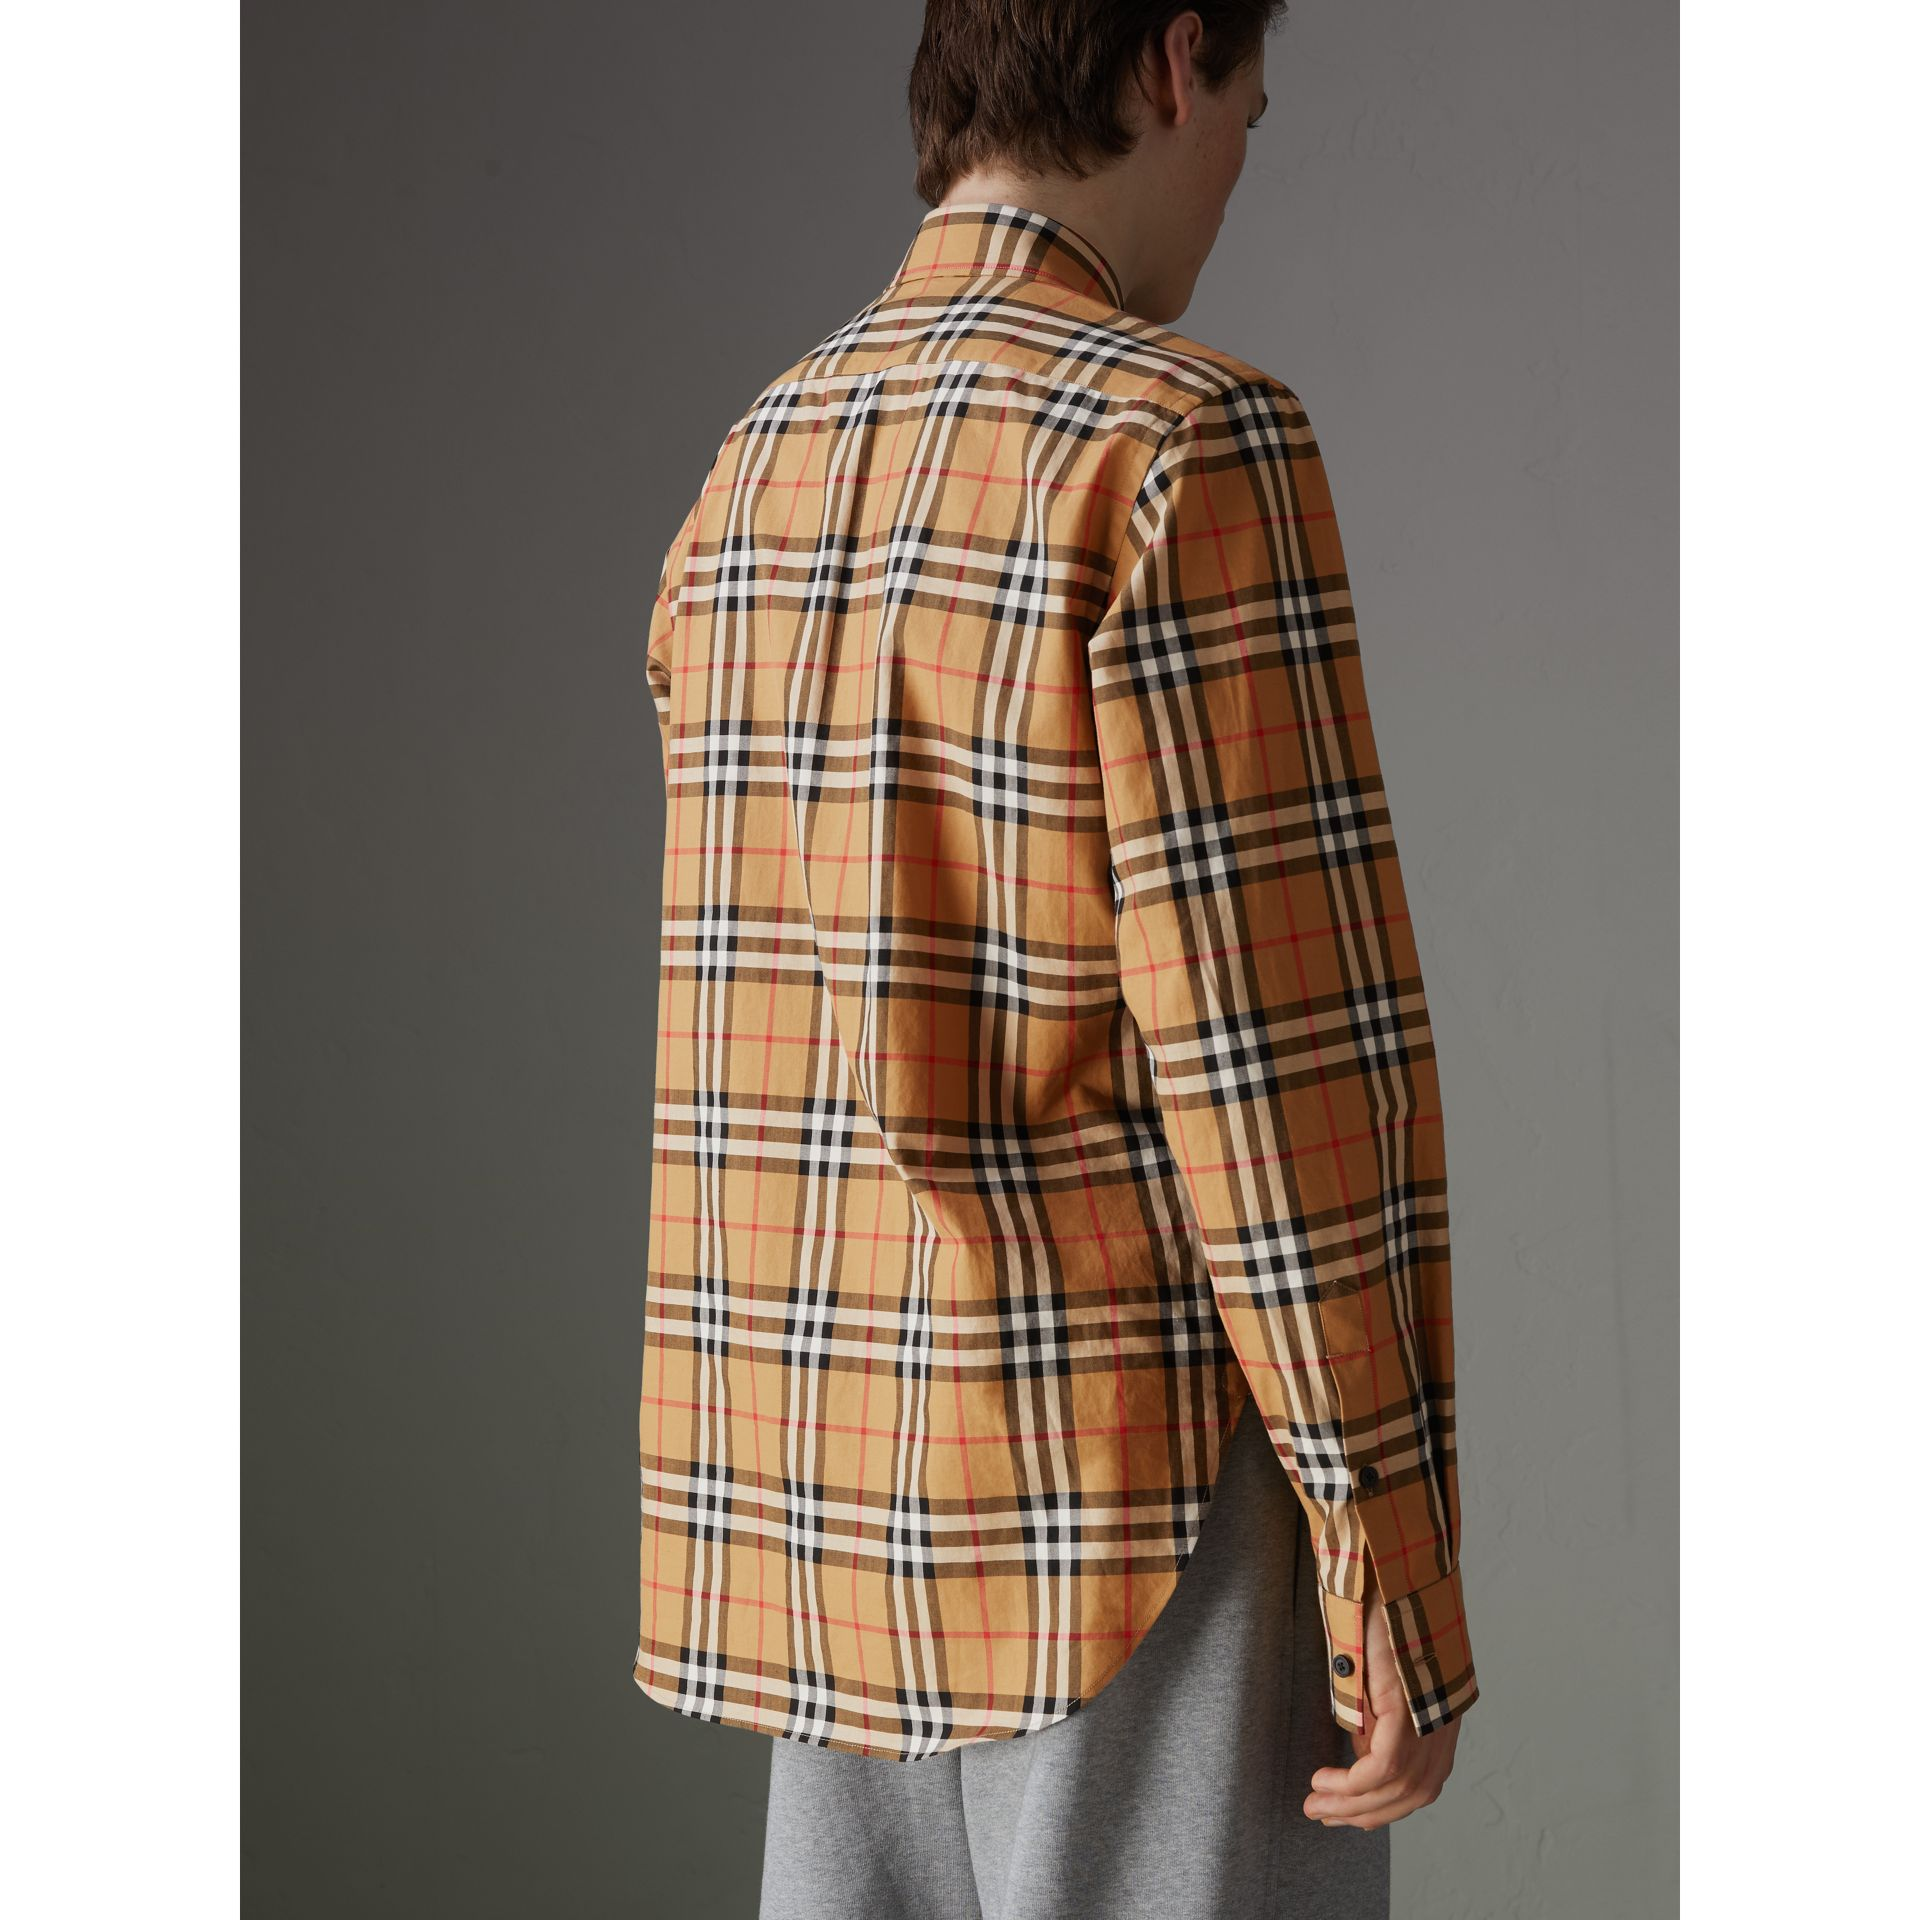 Rainbow Vintage Check Shirt in Antique Yellow - Men | Burberry United States - gallery image 2